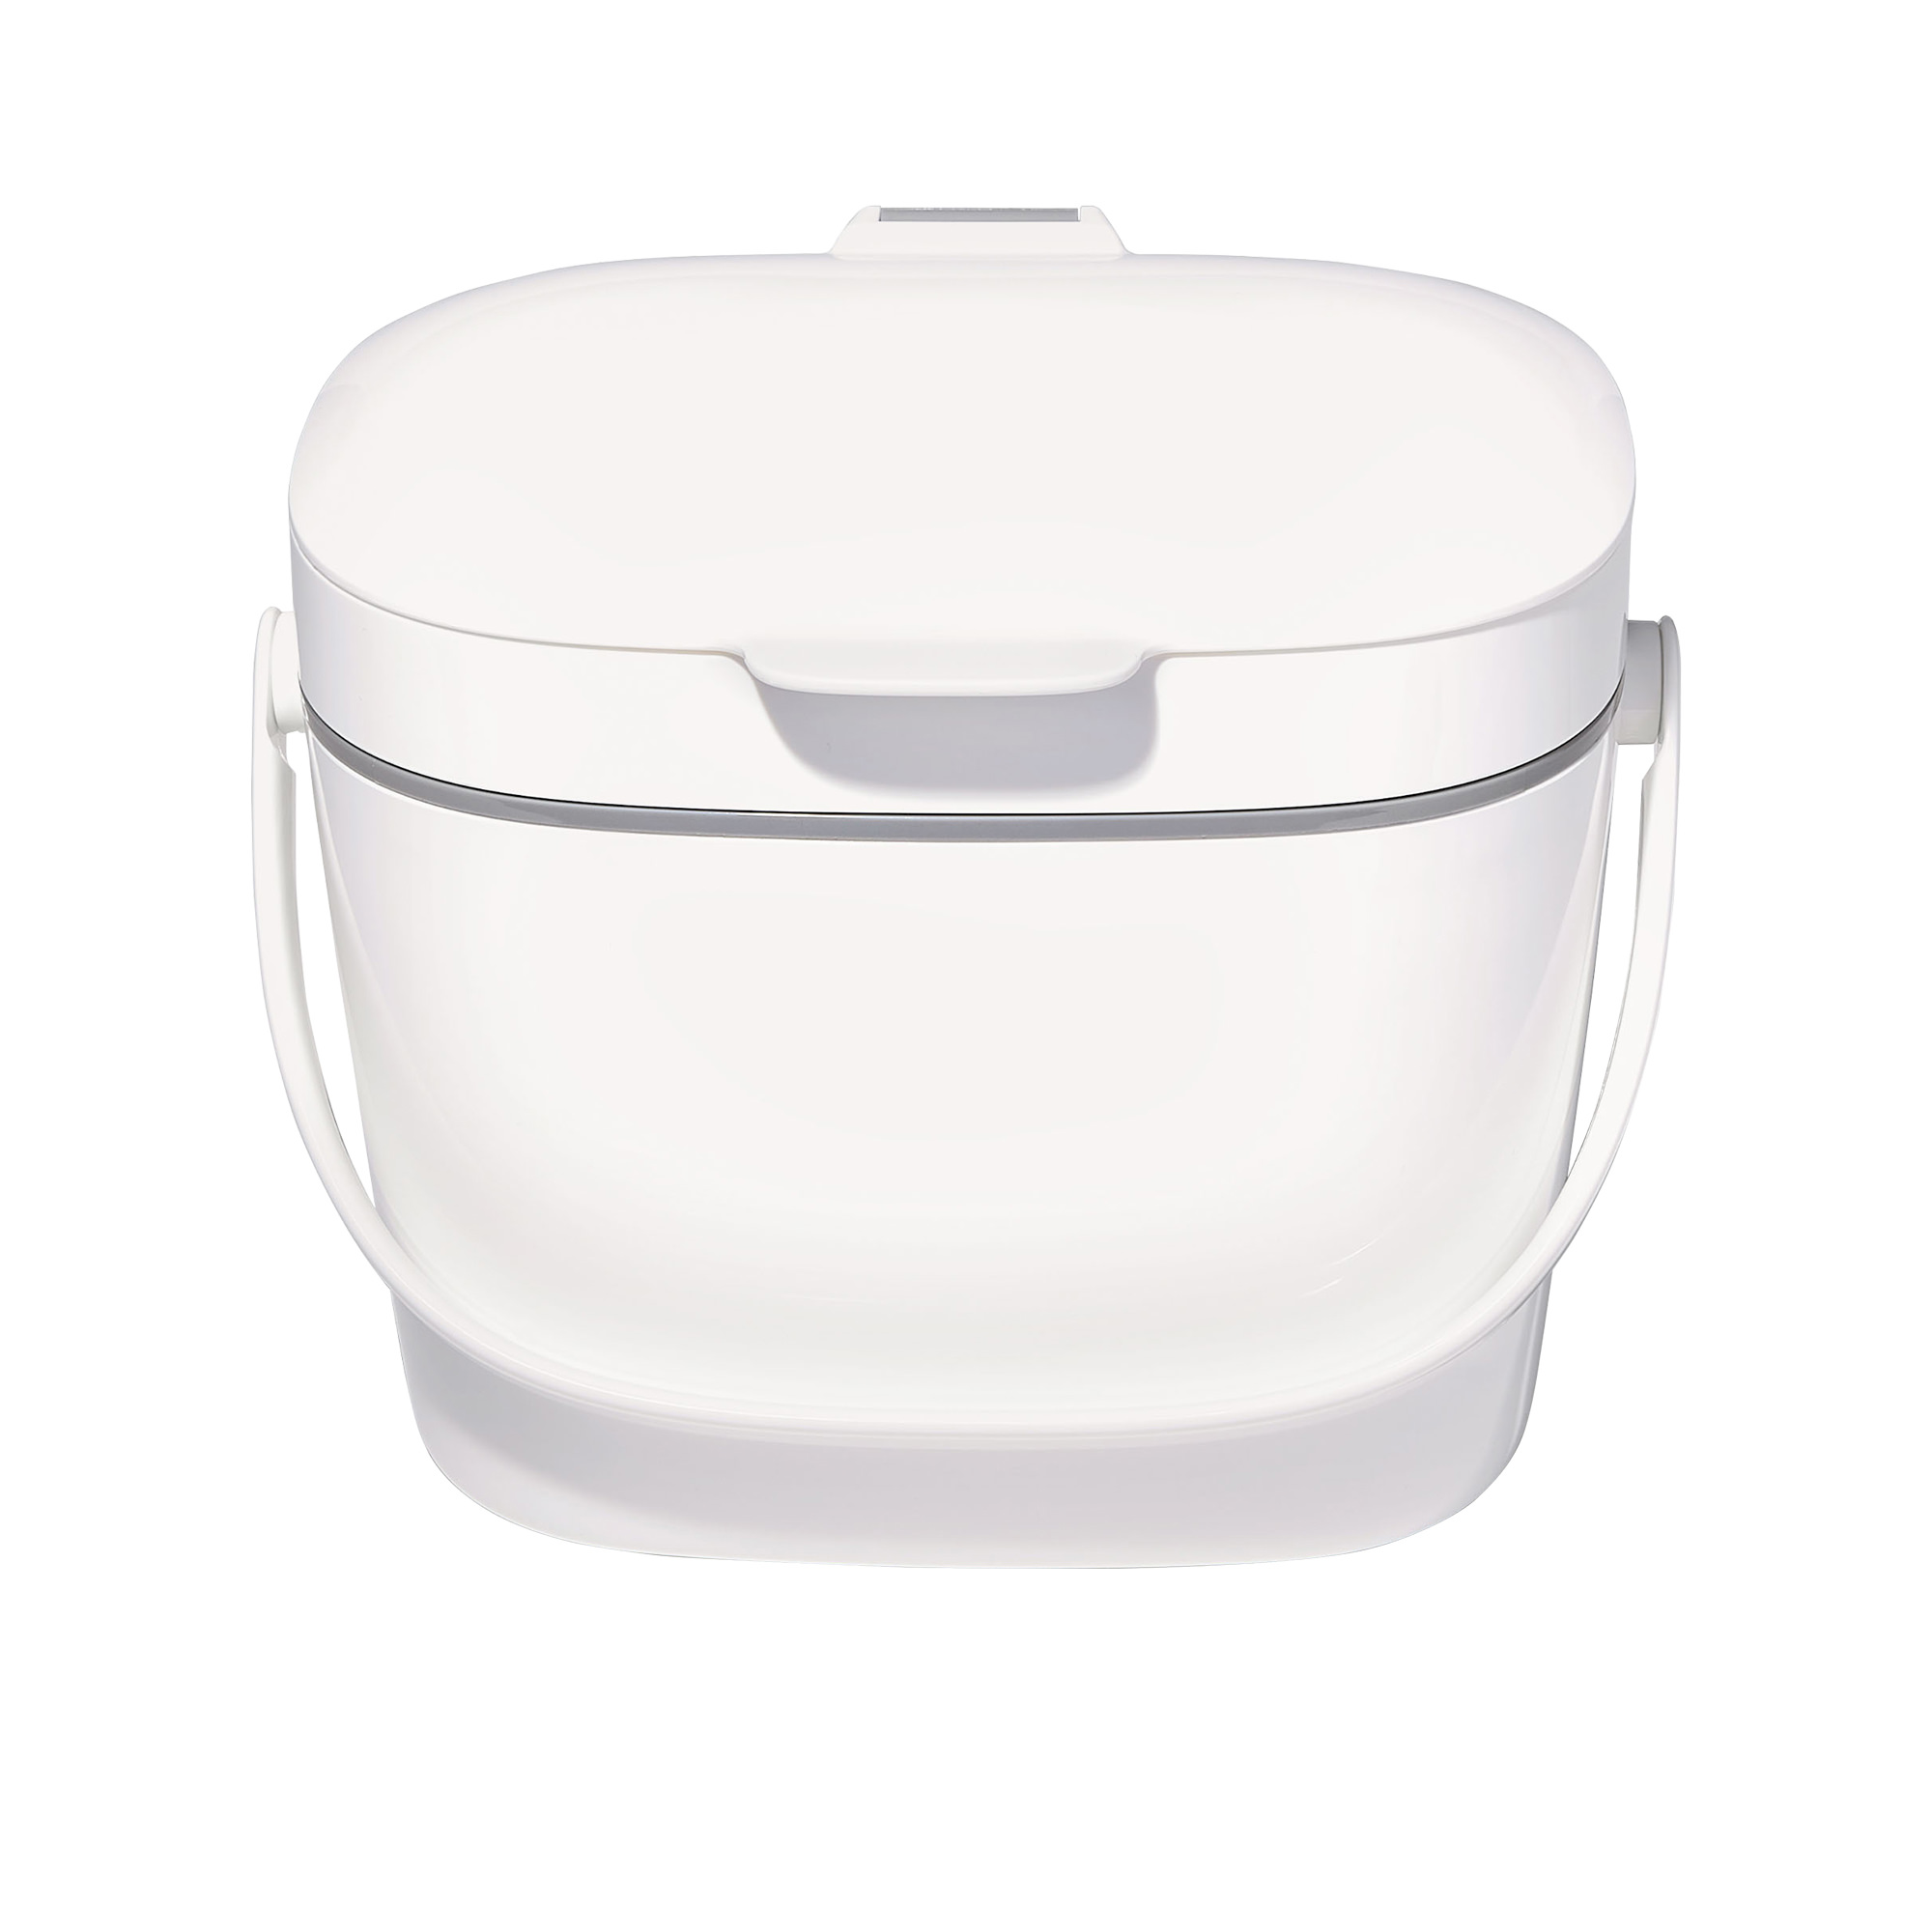 Oxo Good Grips Easy Clean Compost Bin 6.6L White